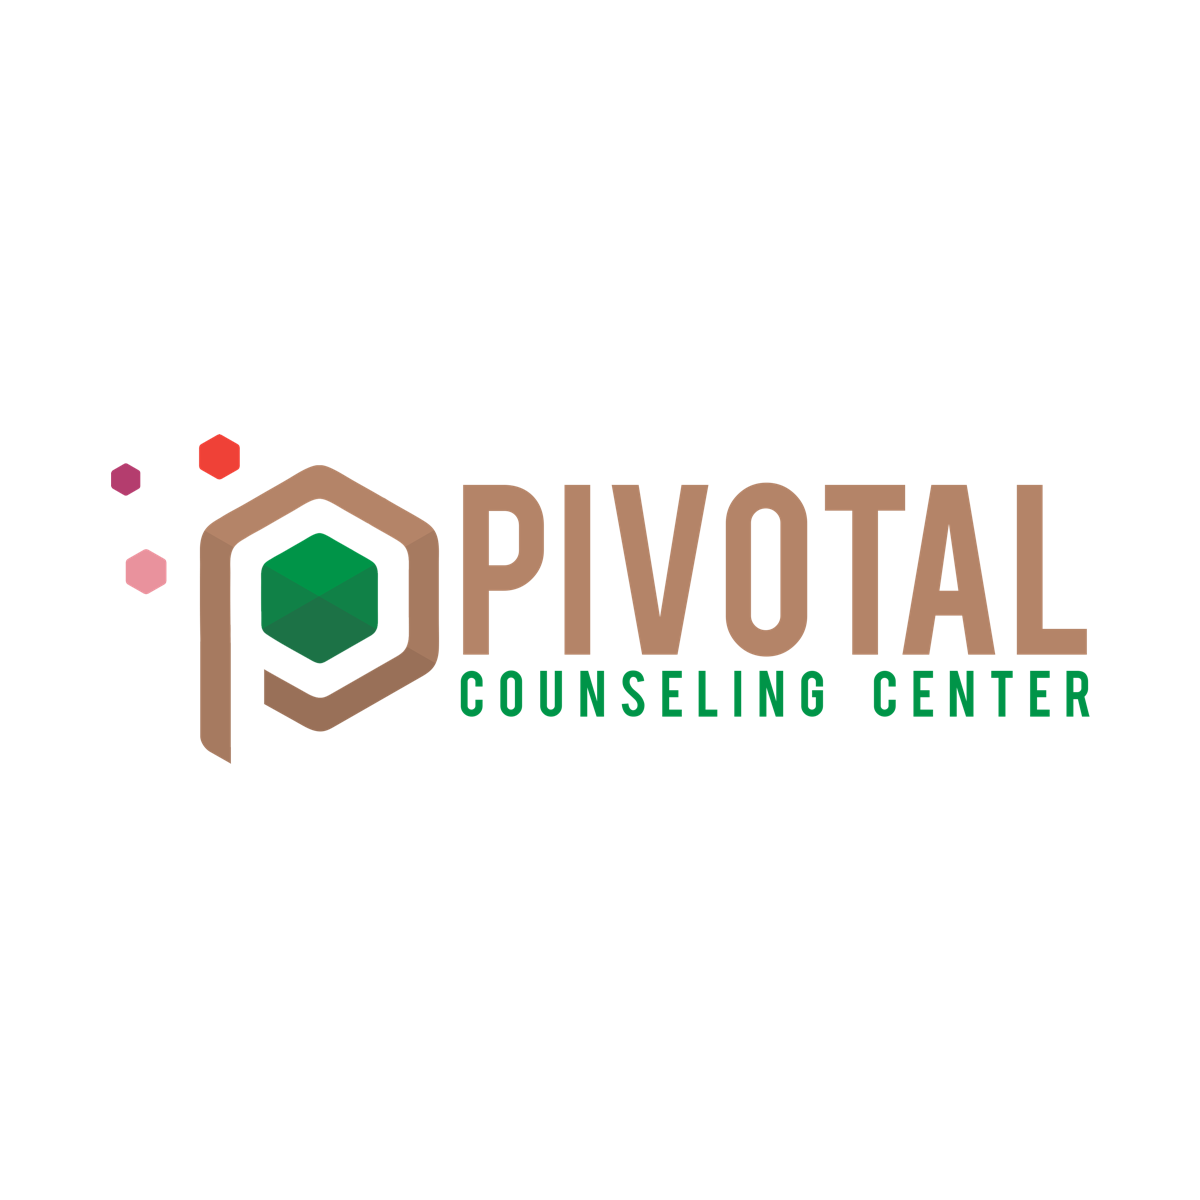 Pivotal Counseling Center